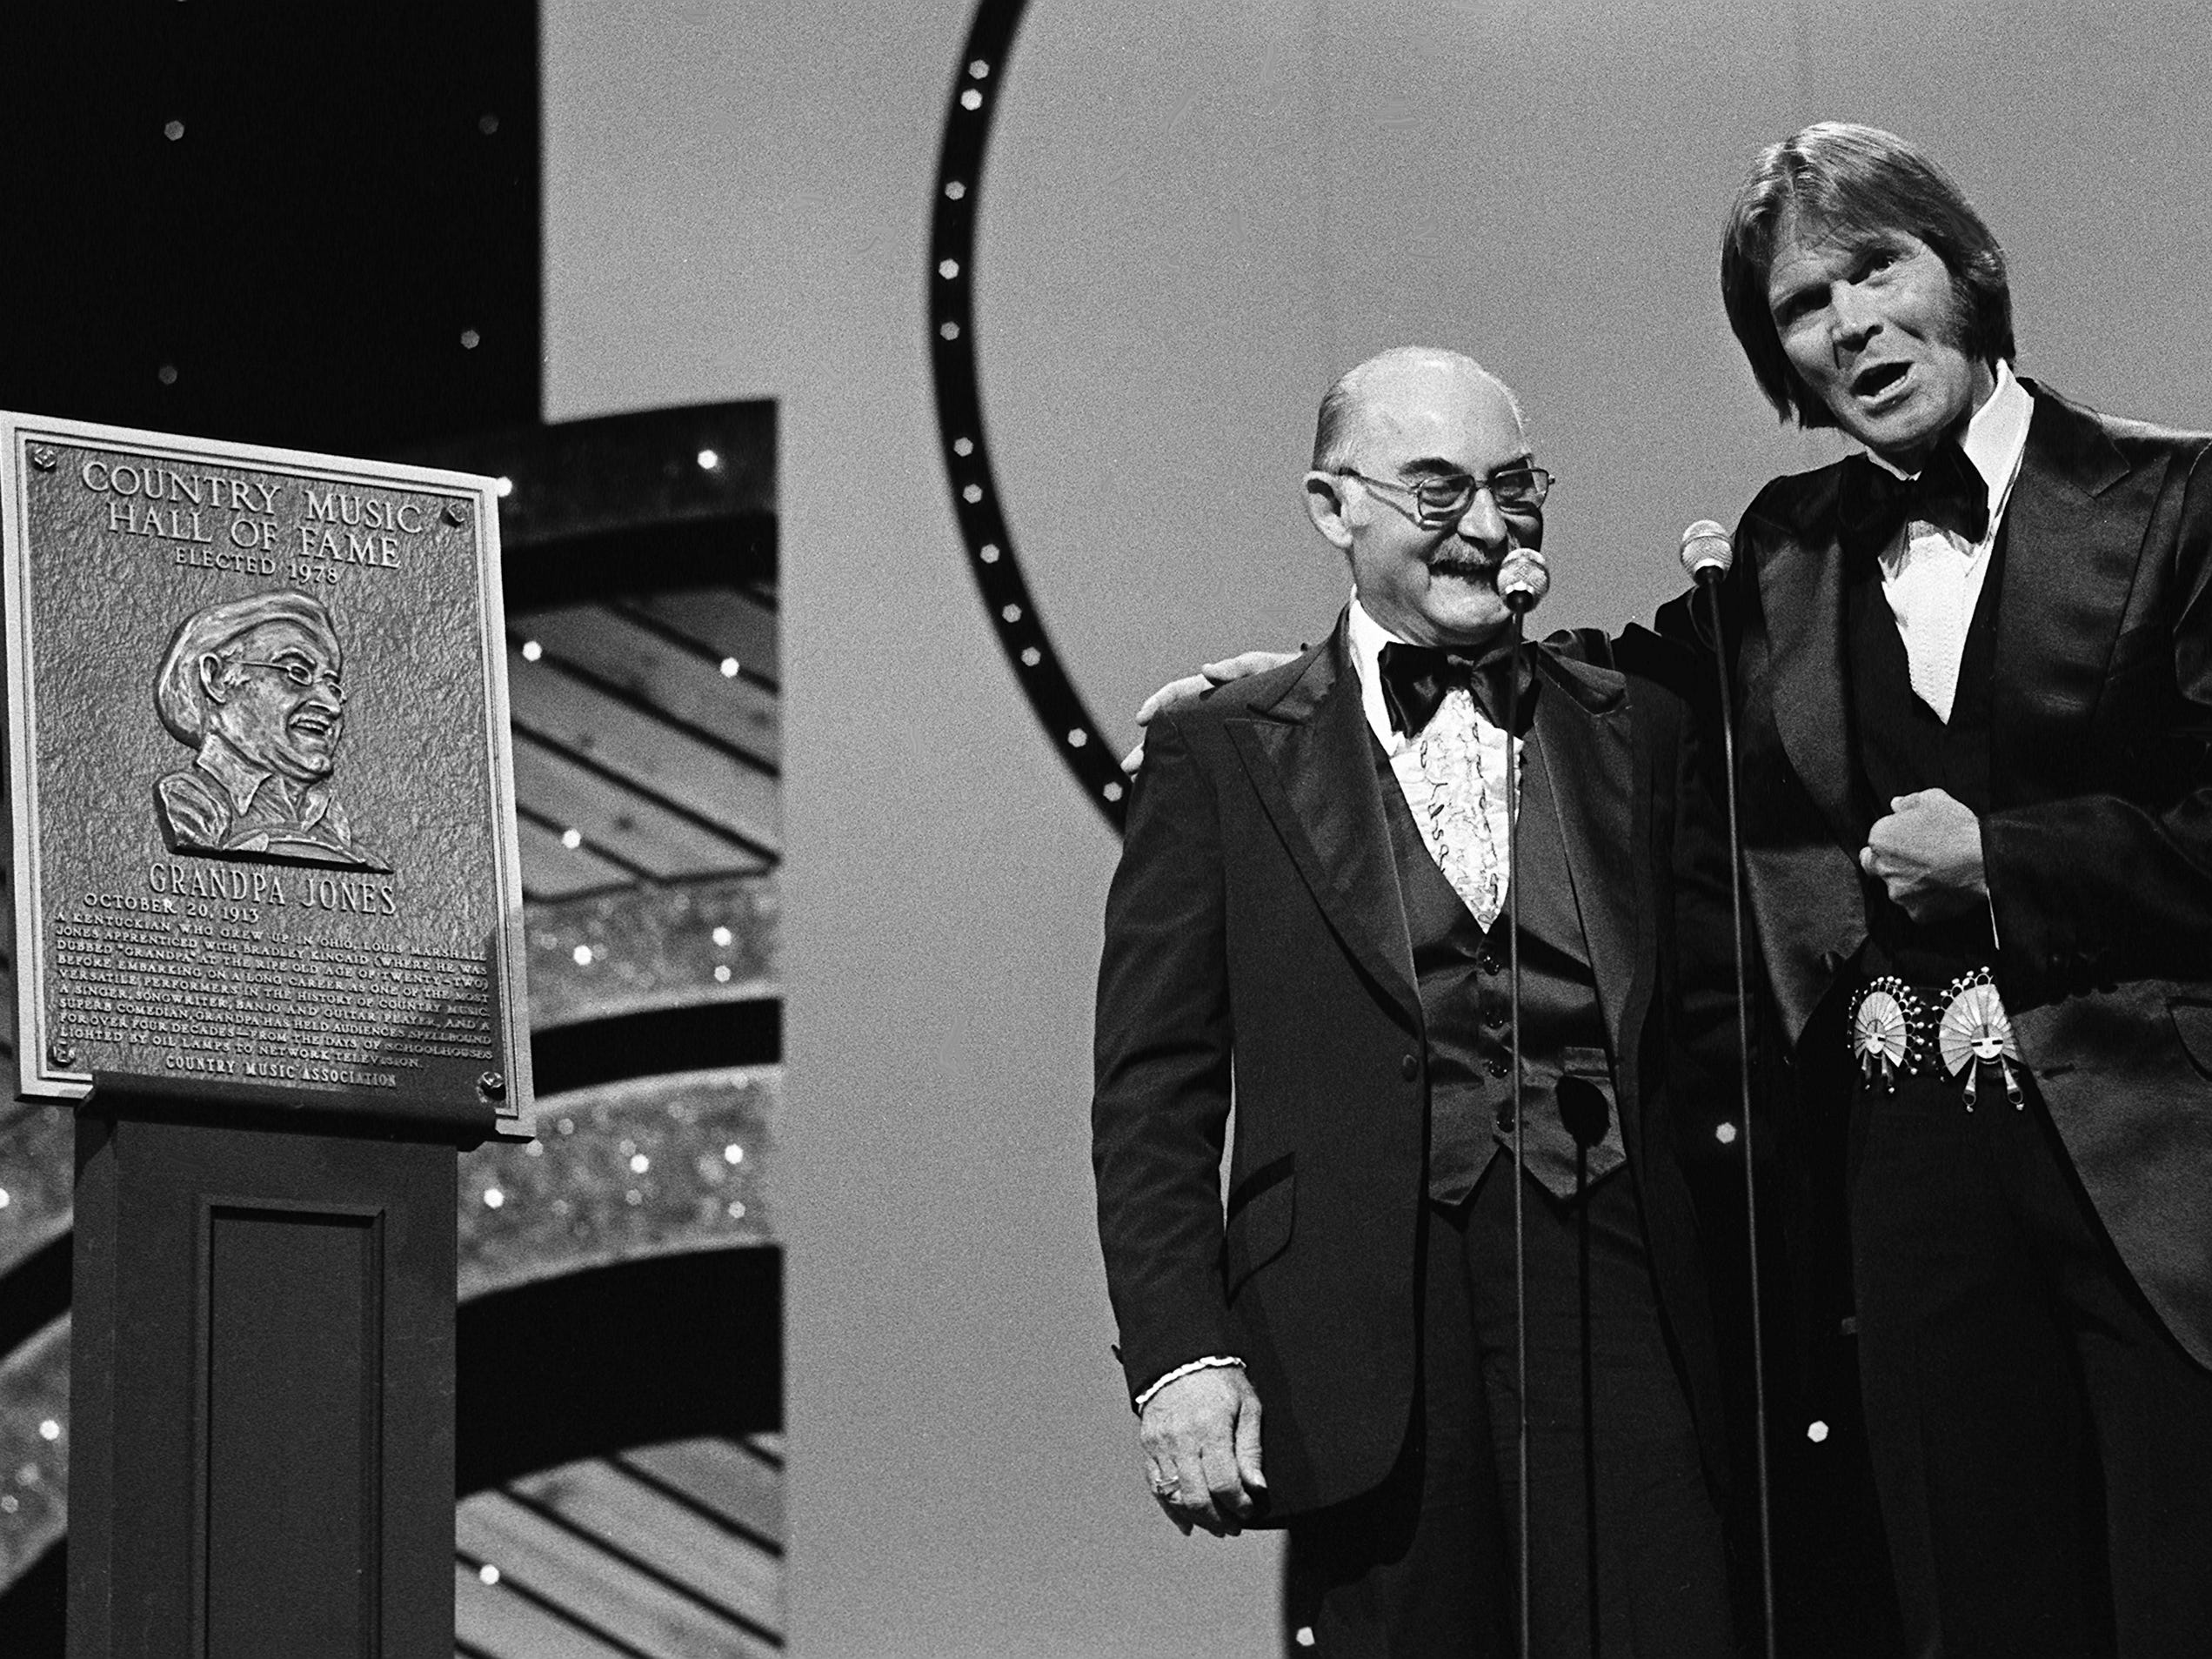 Glen Campbell, right, introduces longtime star Grandpa Jones as the 29th member of the Country Music Hall of Fame during the 12th annual CMA Awards show Oct. 9, 1978.